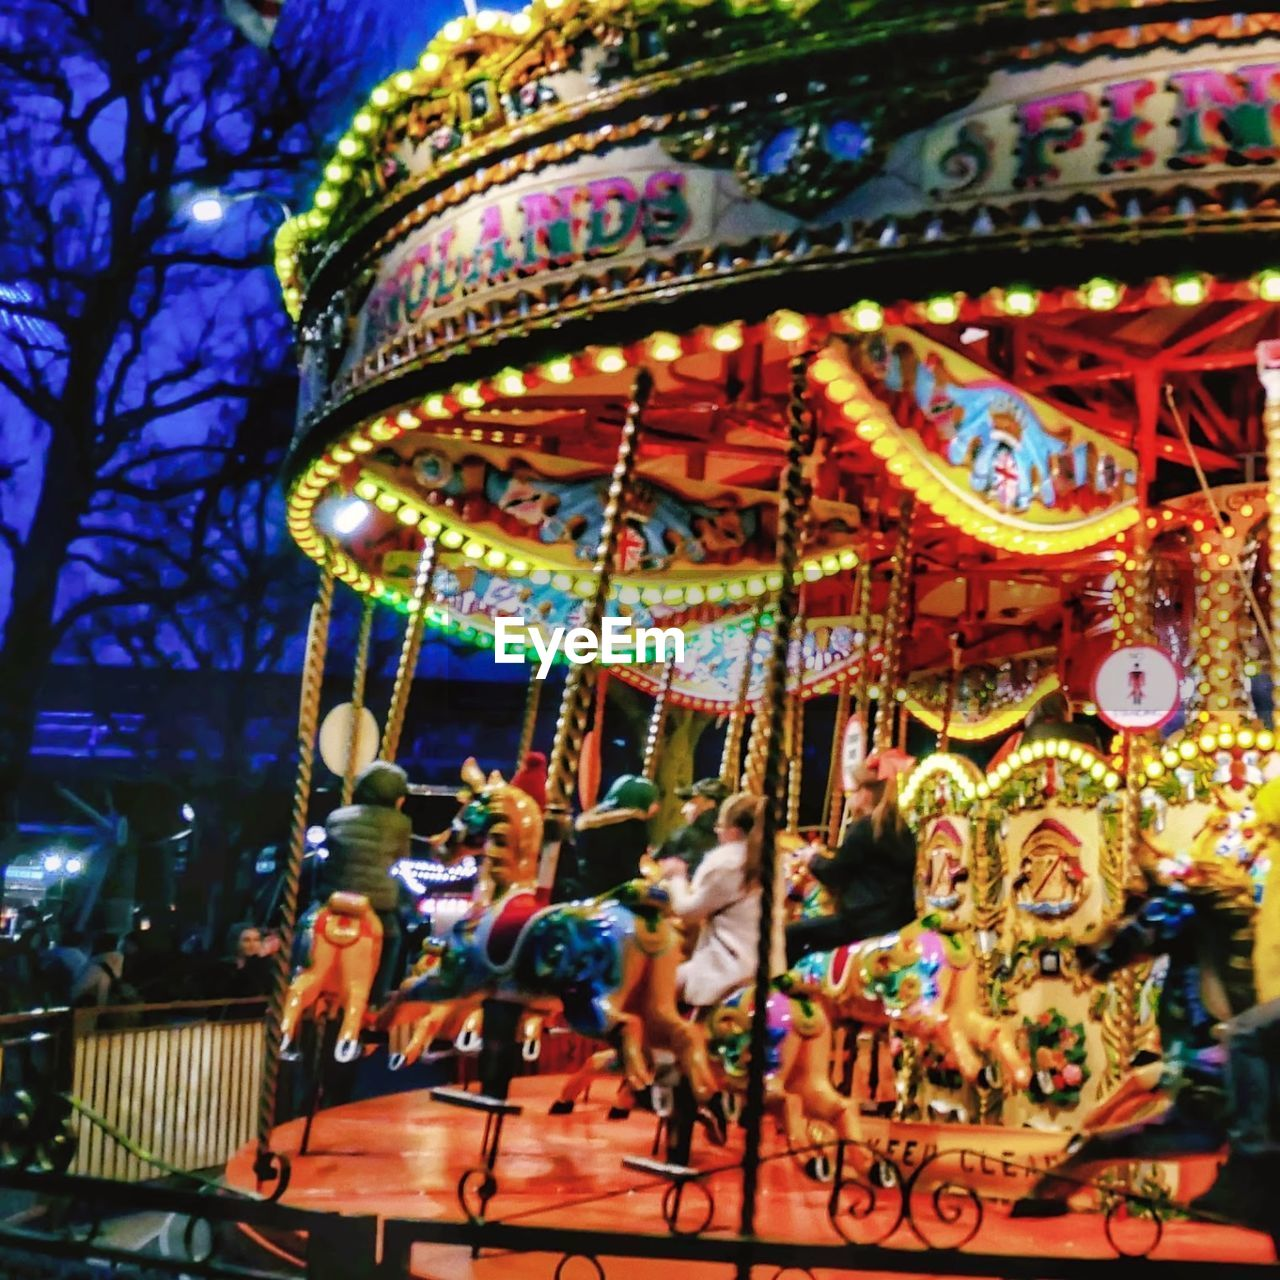 amusement park, amusement park ride, arts culture and entertainment, carousel, illuminated, representation, multi colored, enjoyment, animal representation, leisure activity, group of people, outdoors, night, carousel horses, real people, fun, built structure, architecture, art and craft, merry-go-round